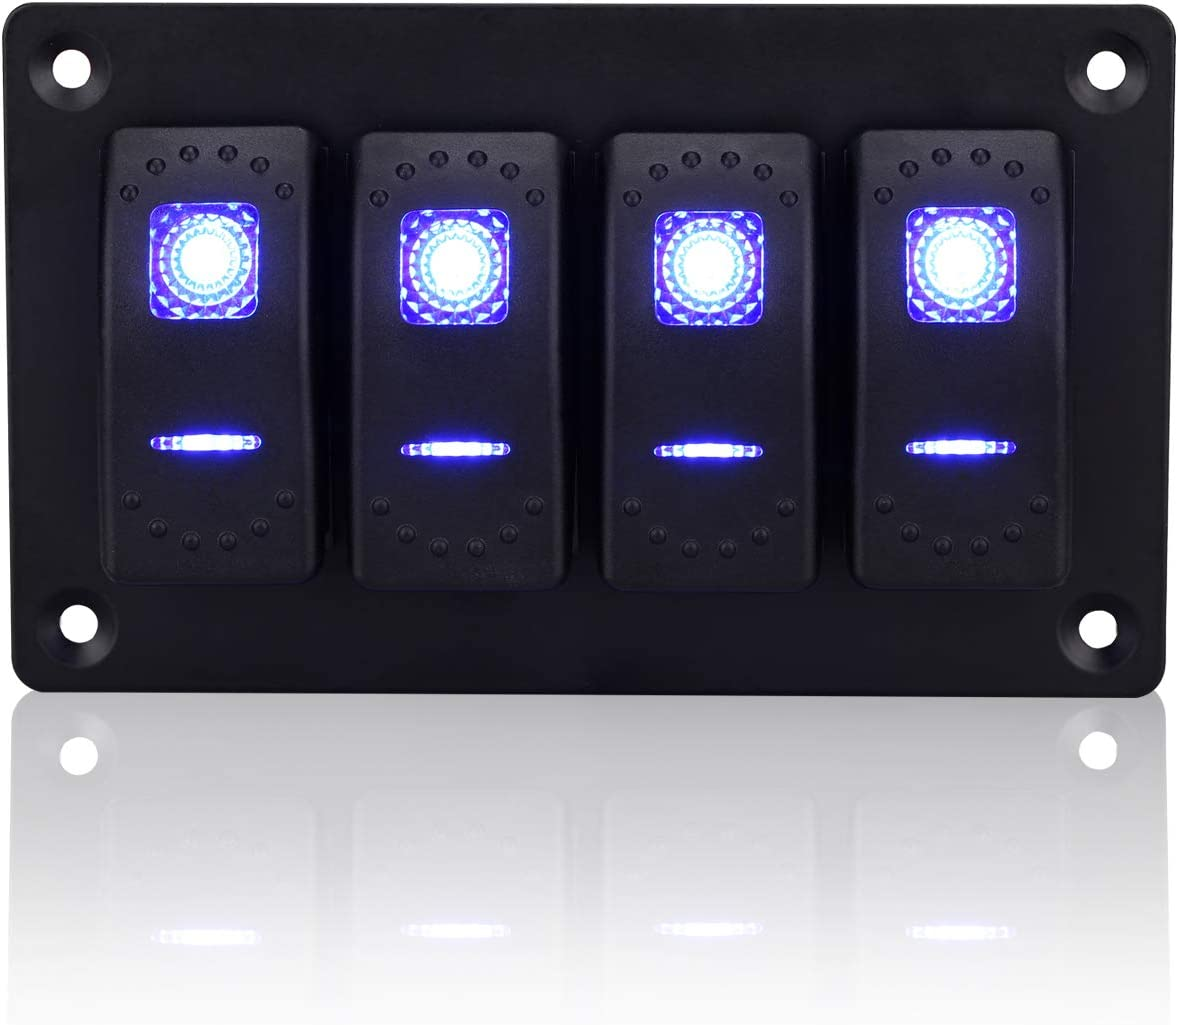 Jiaying Rocker Switch Aluminum Panel 12V 24V 4 Gang Toggle Switches Dash 5 Pin On Off Toggle Switch with Blue Backlit LED for Car Truck Boat Marine …